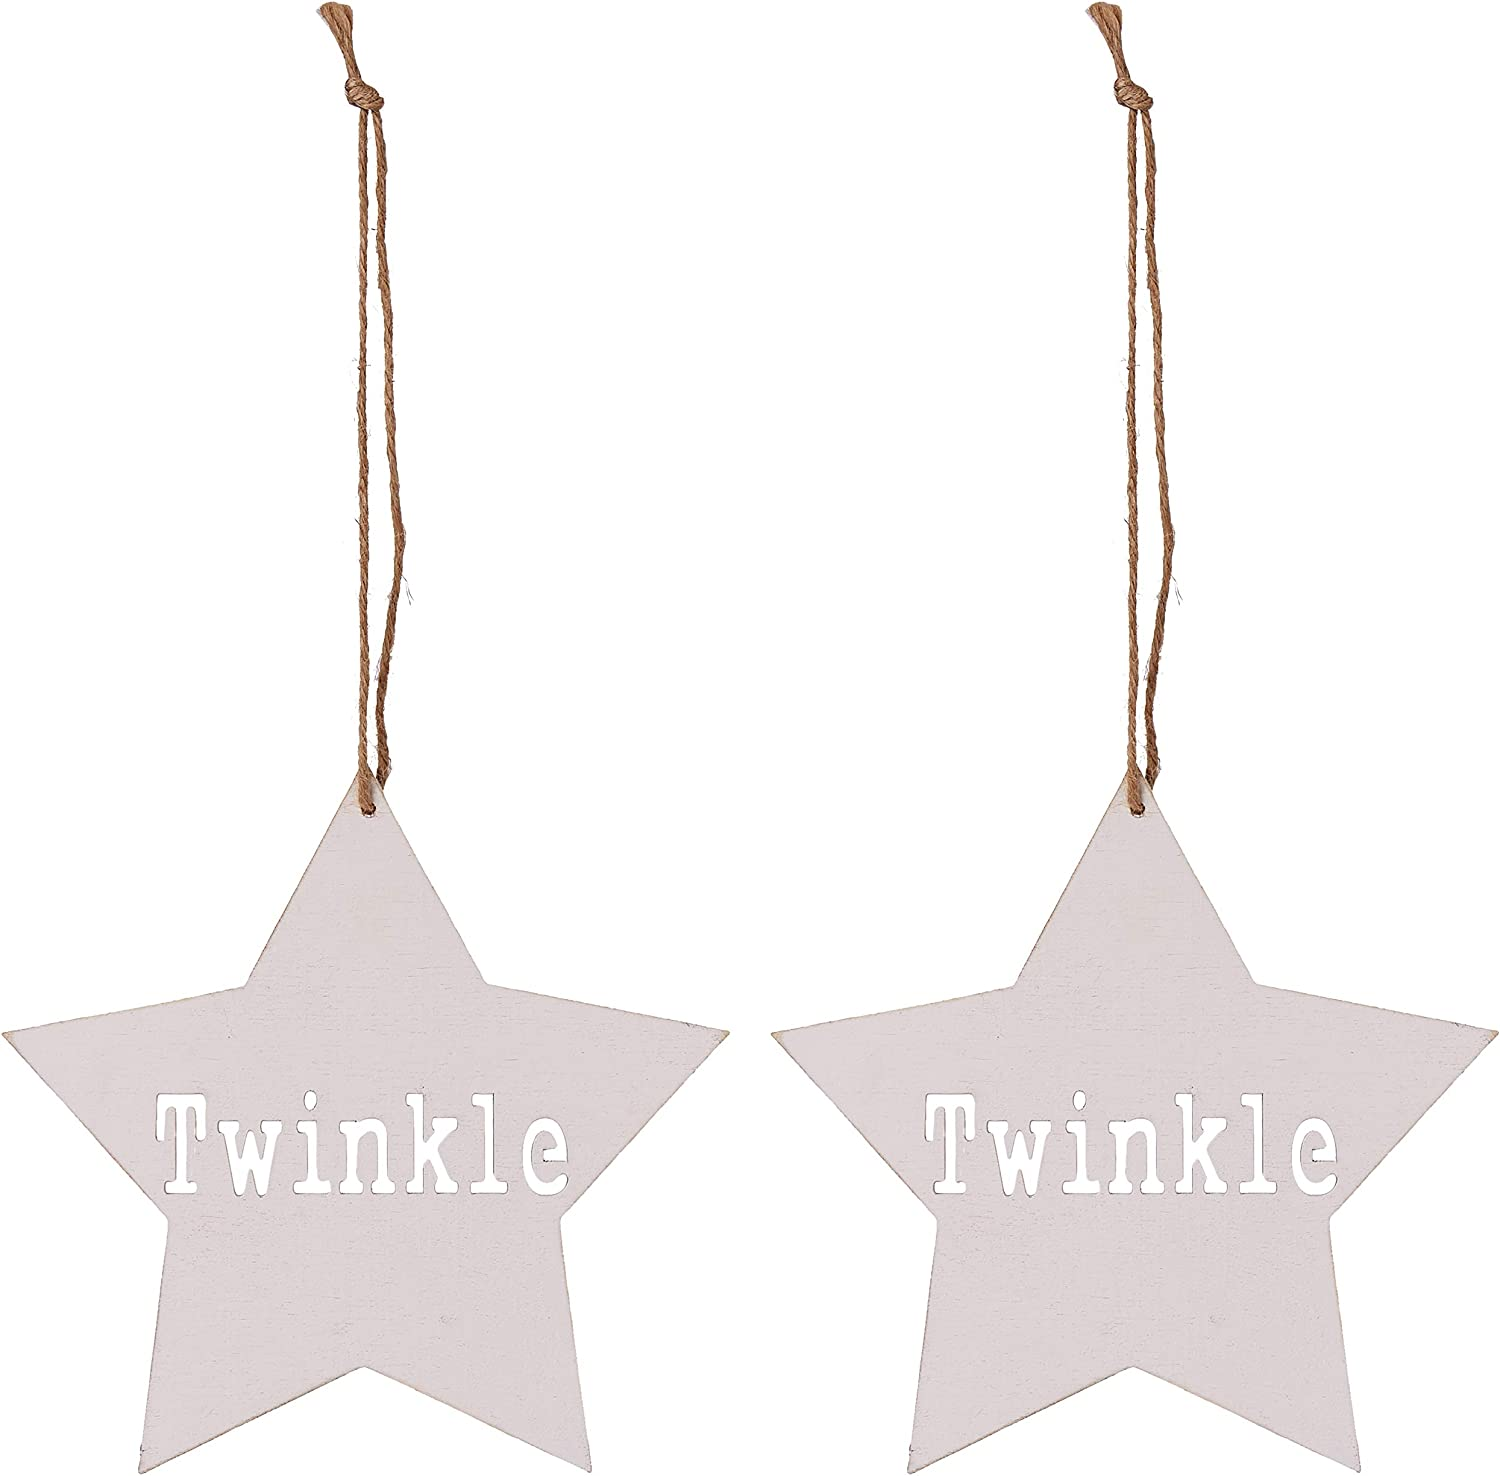 OmniReselling Hanging 4 years warranty Star Limited time for free shipping with'TWINKLE' Pack Unspec Cutout 2